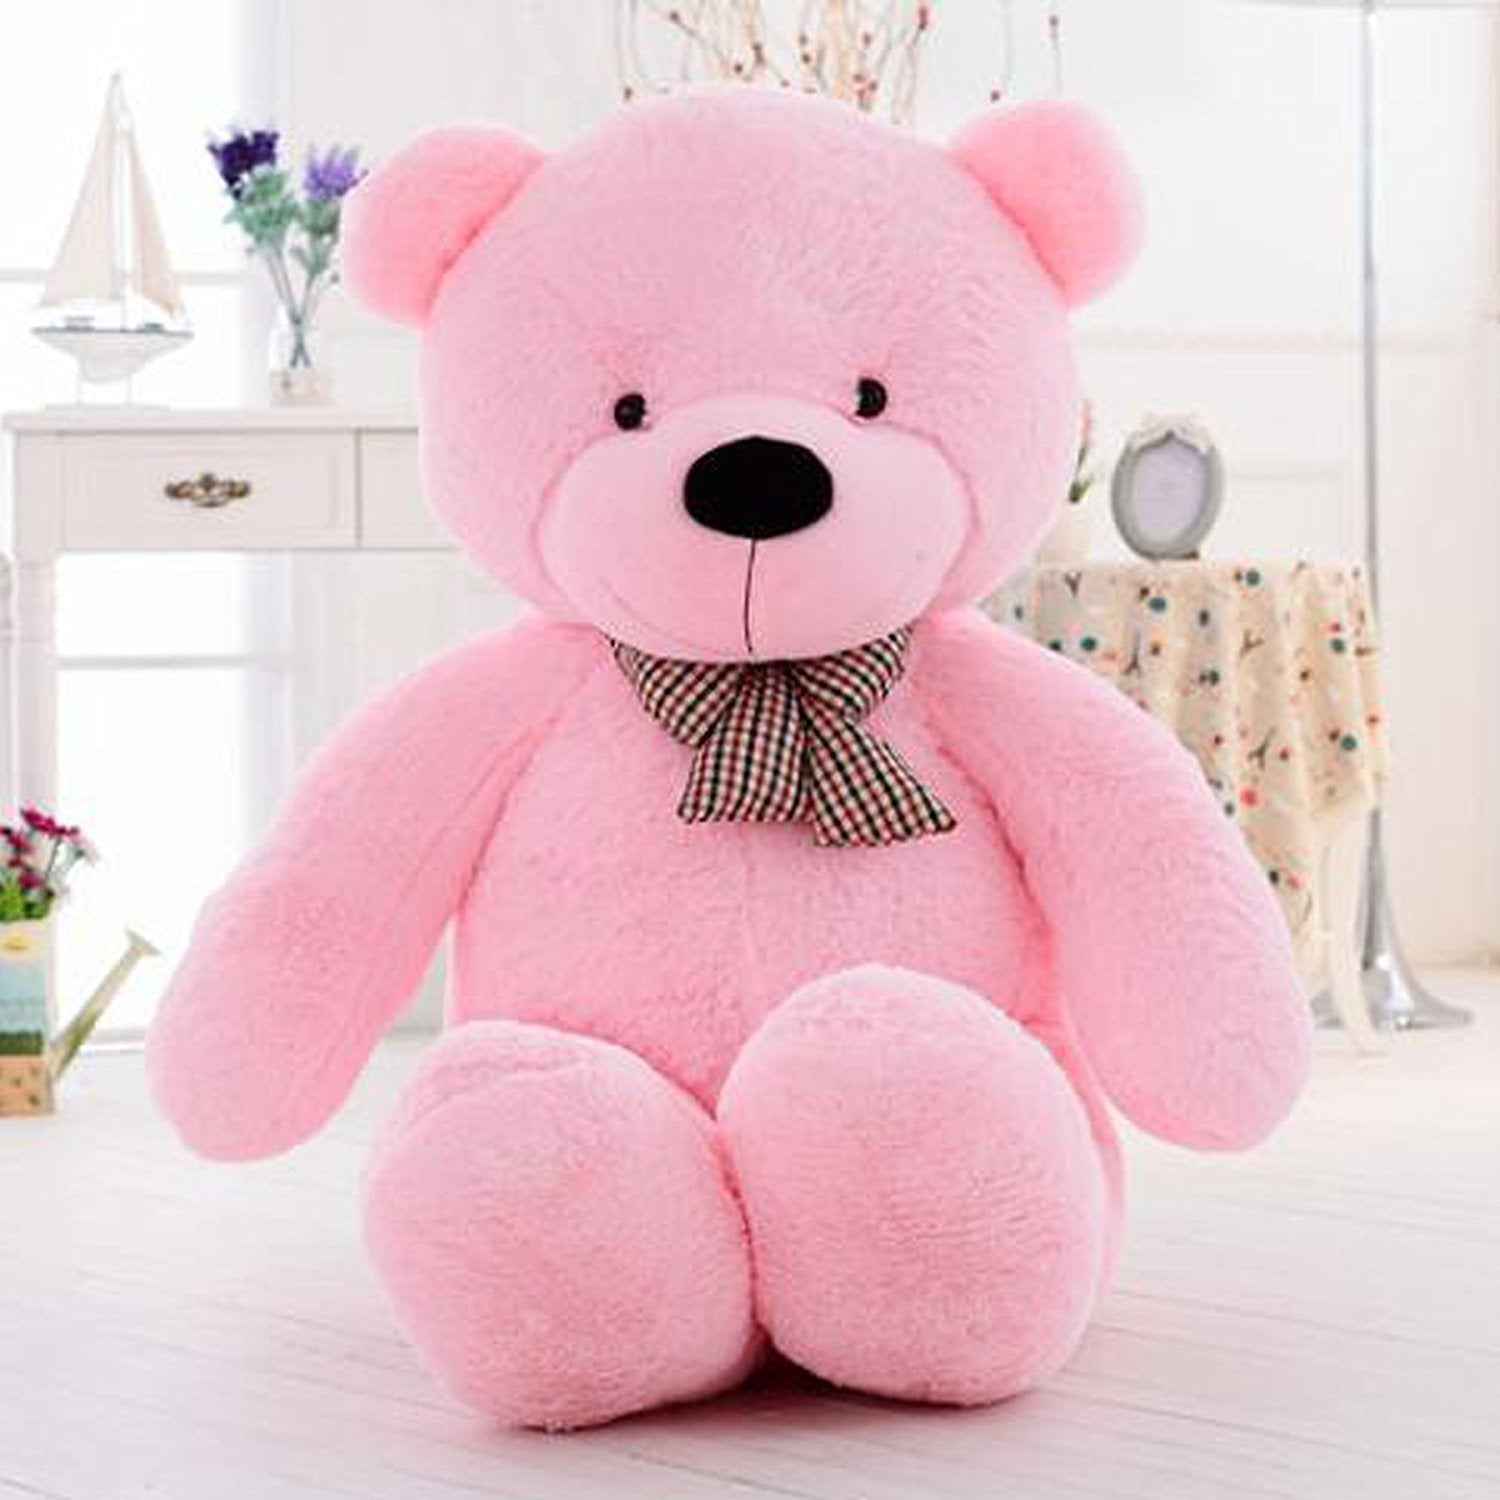 6ft Life-Size Teddy Bear Pink Bear